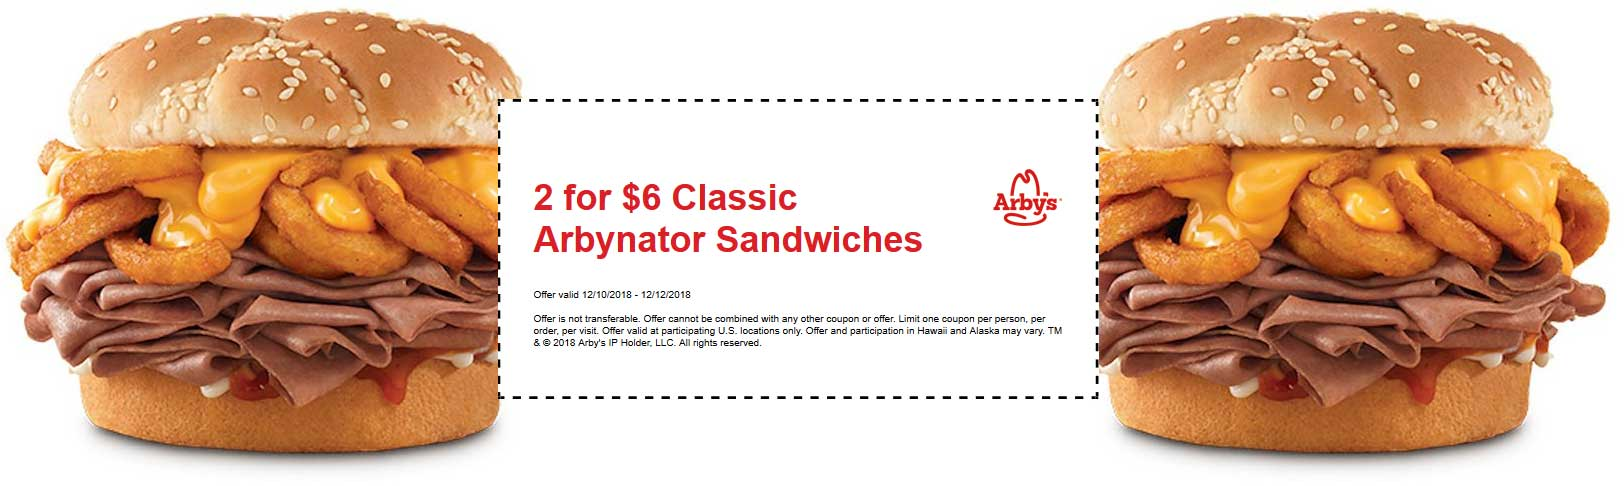 Arbys Coupon December 2019 2 Arbynator sandwiches for $6 at Arbys